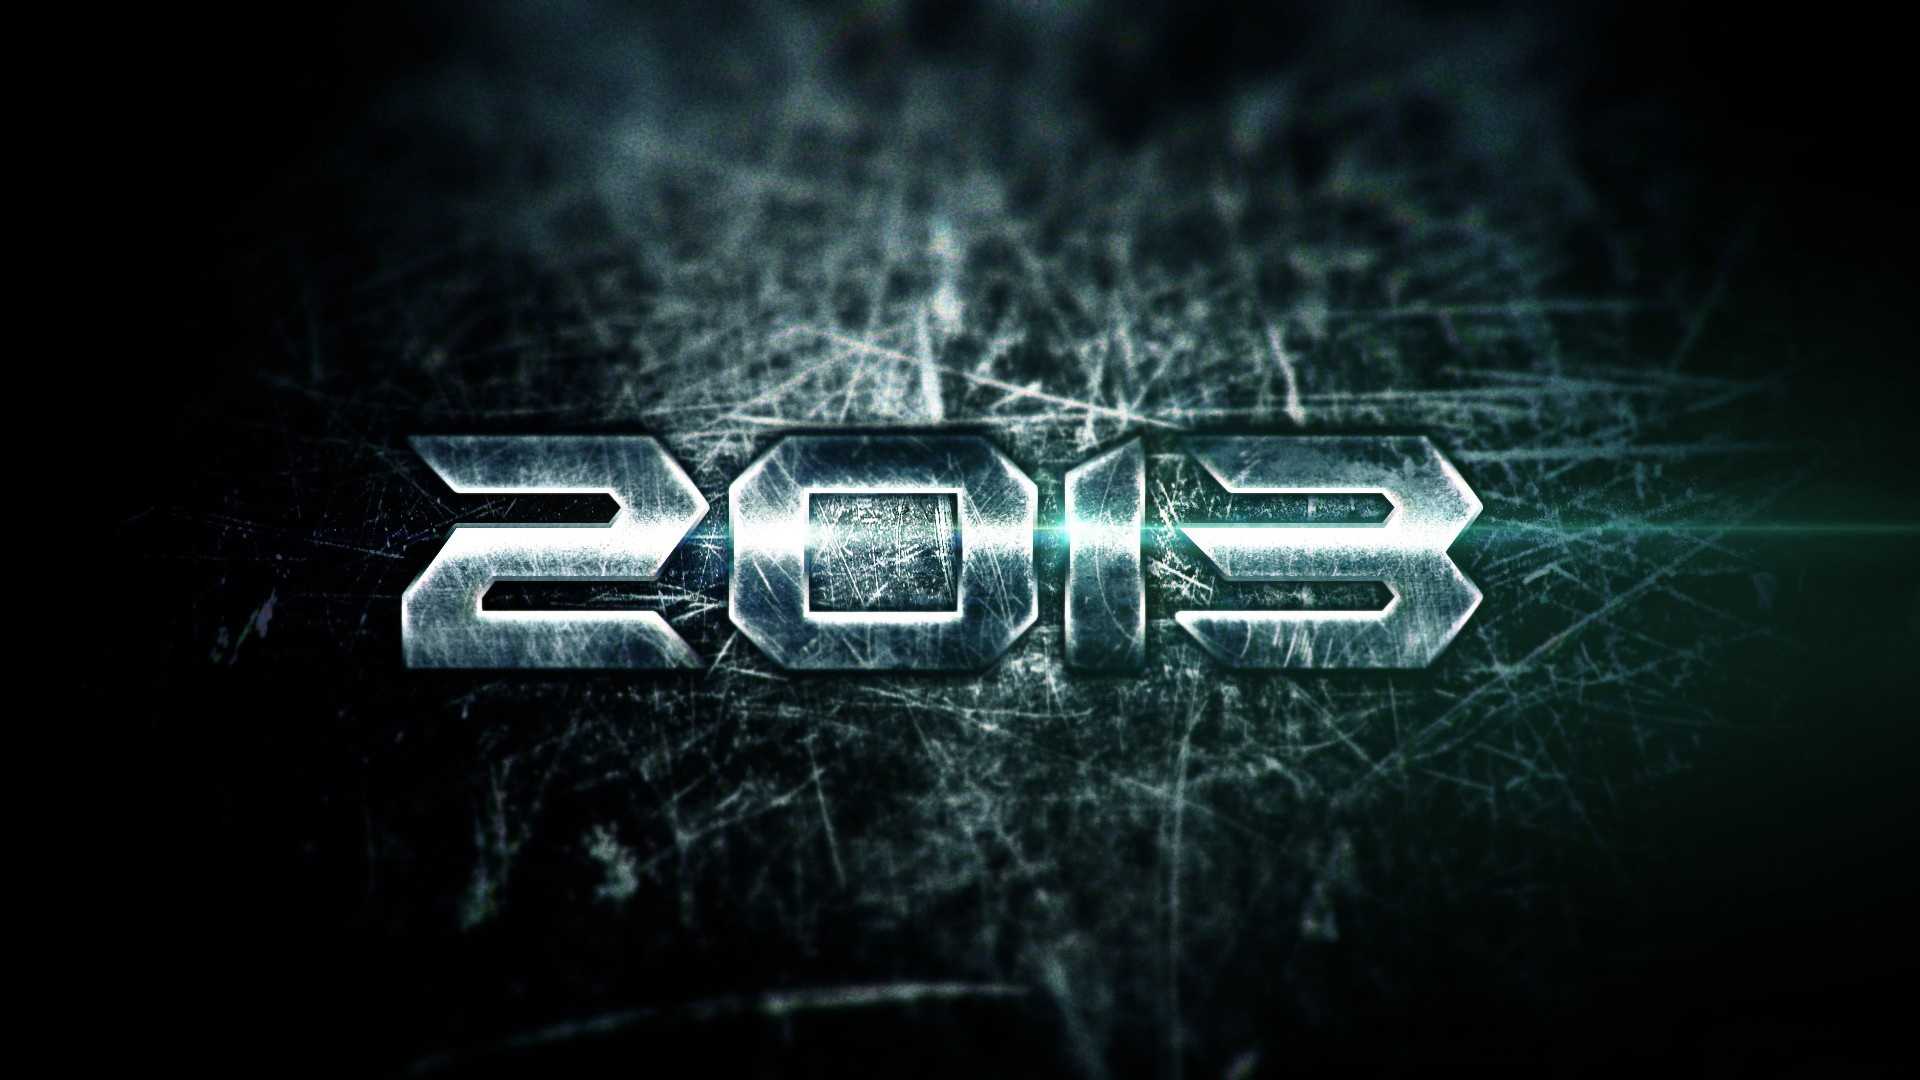 2013 HD Wallpaper in 1920x1080 Resolution 1920x1080